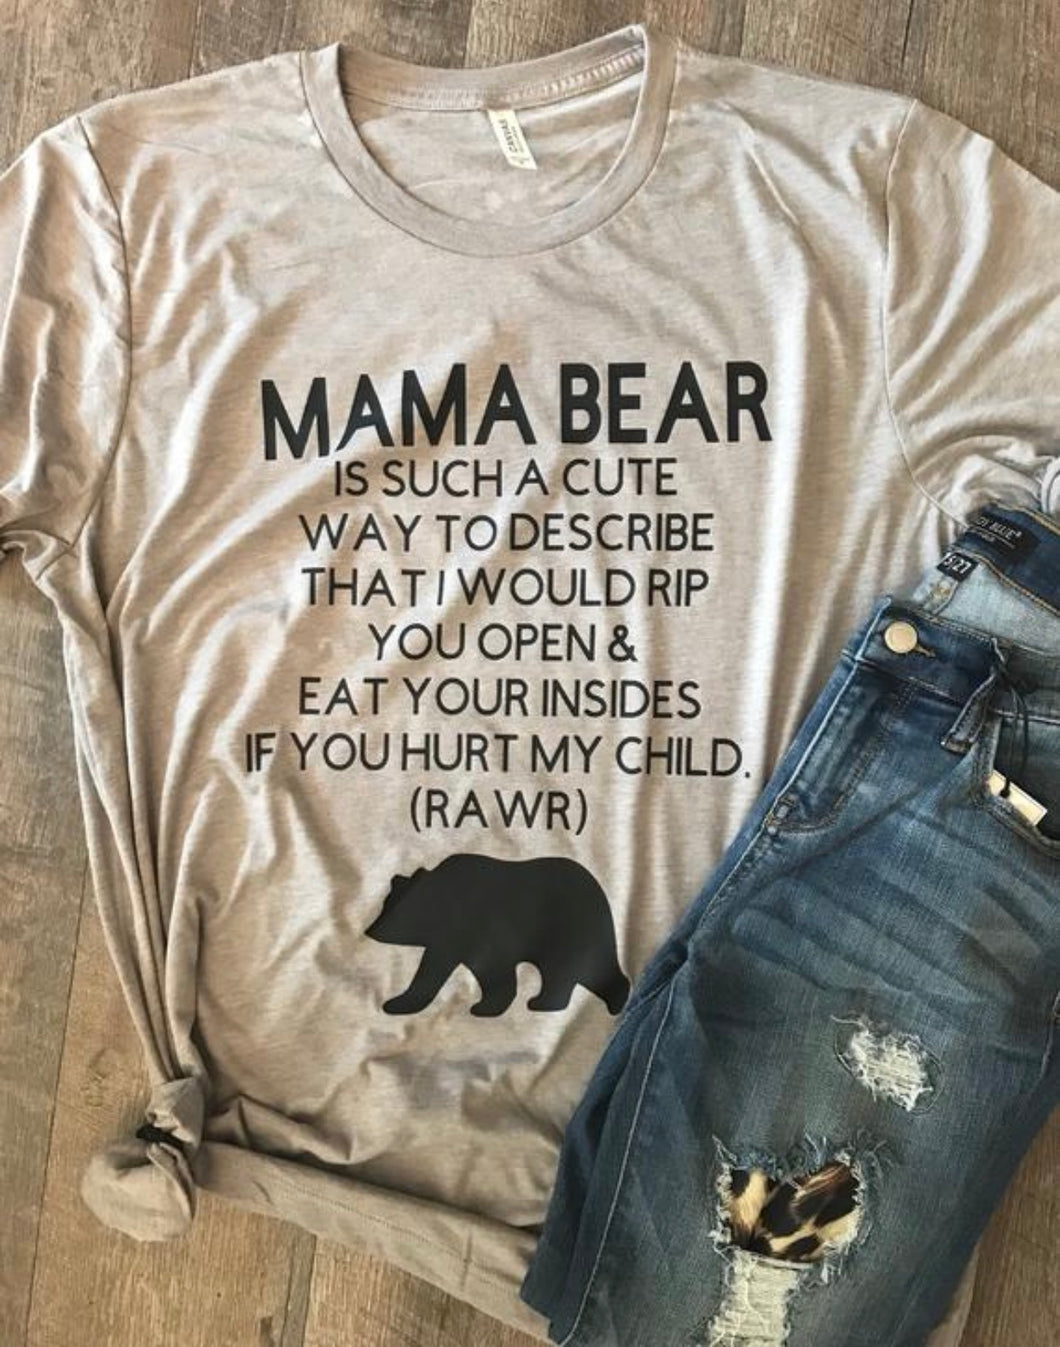 Mama bear is such a cute way to describe that i would rup you open and eat your insides if you hurt my child rawr funny mama bear tee tshirt - Mavictoria Designs Hot Press Express